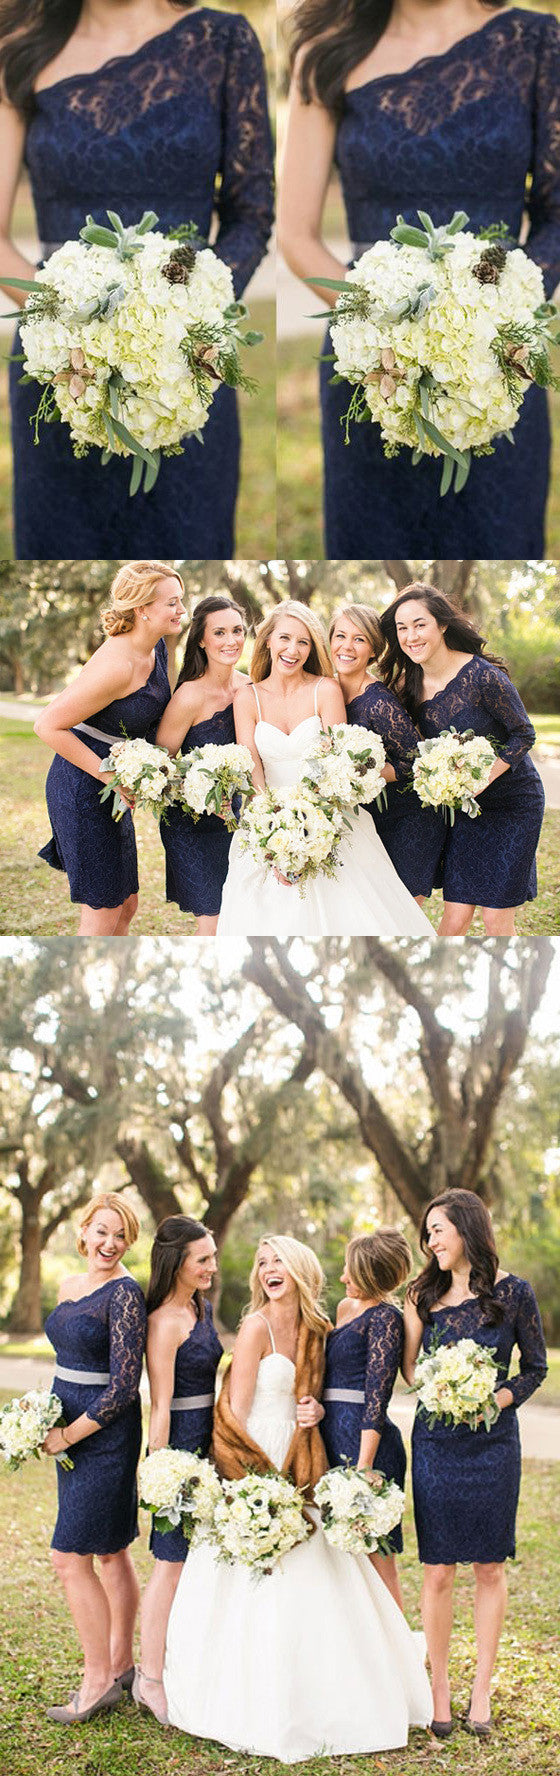 One Shoulder Long Sleeve Lace Navy Blue Short Bridesmaid Dresses, BG51265